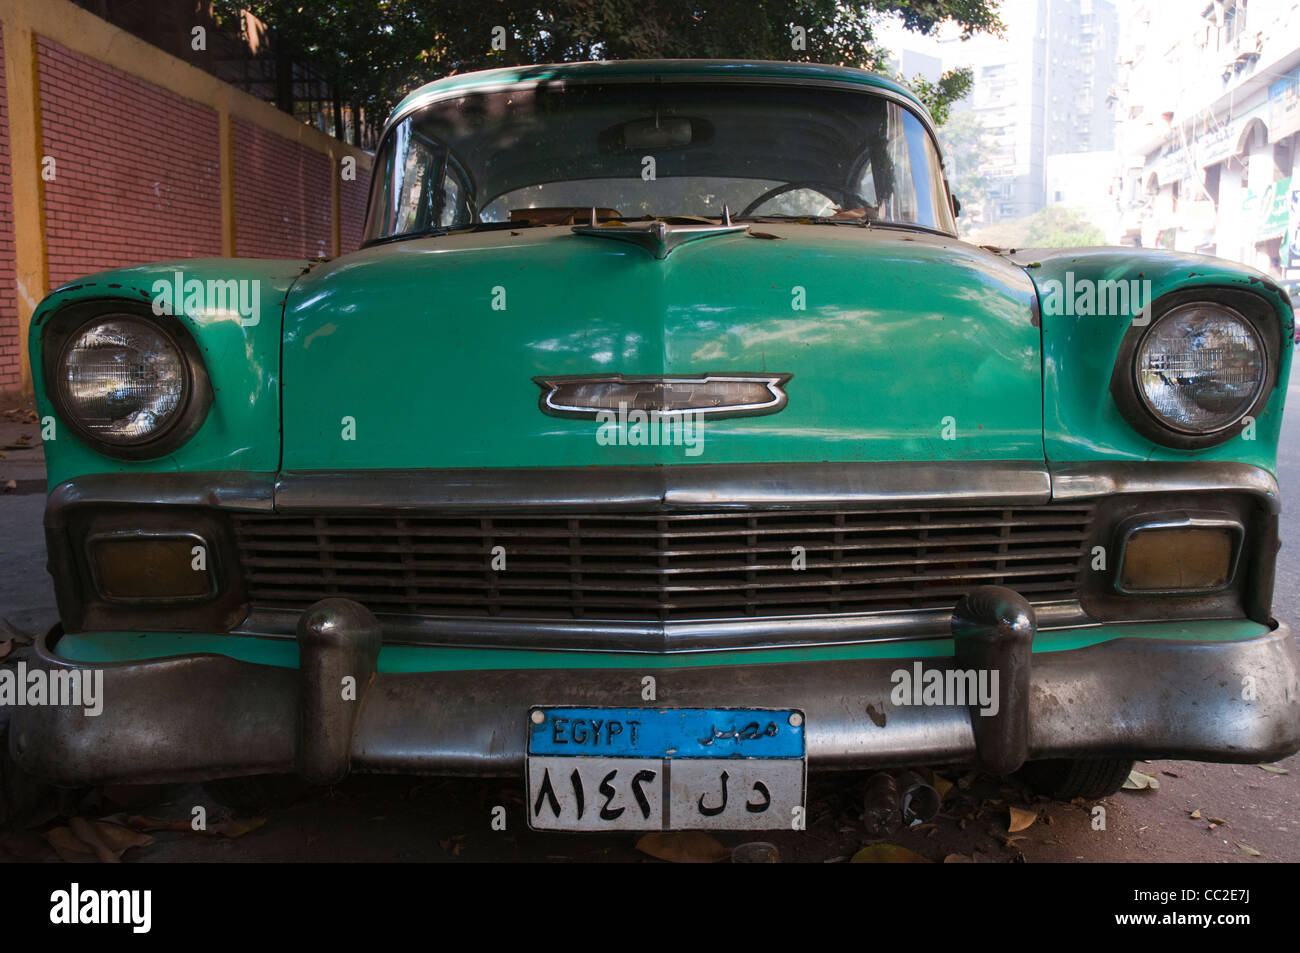 1950s Chevrolet Bel Air car in unrestored condition, Cairo, Egypt ...